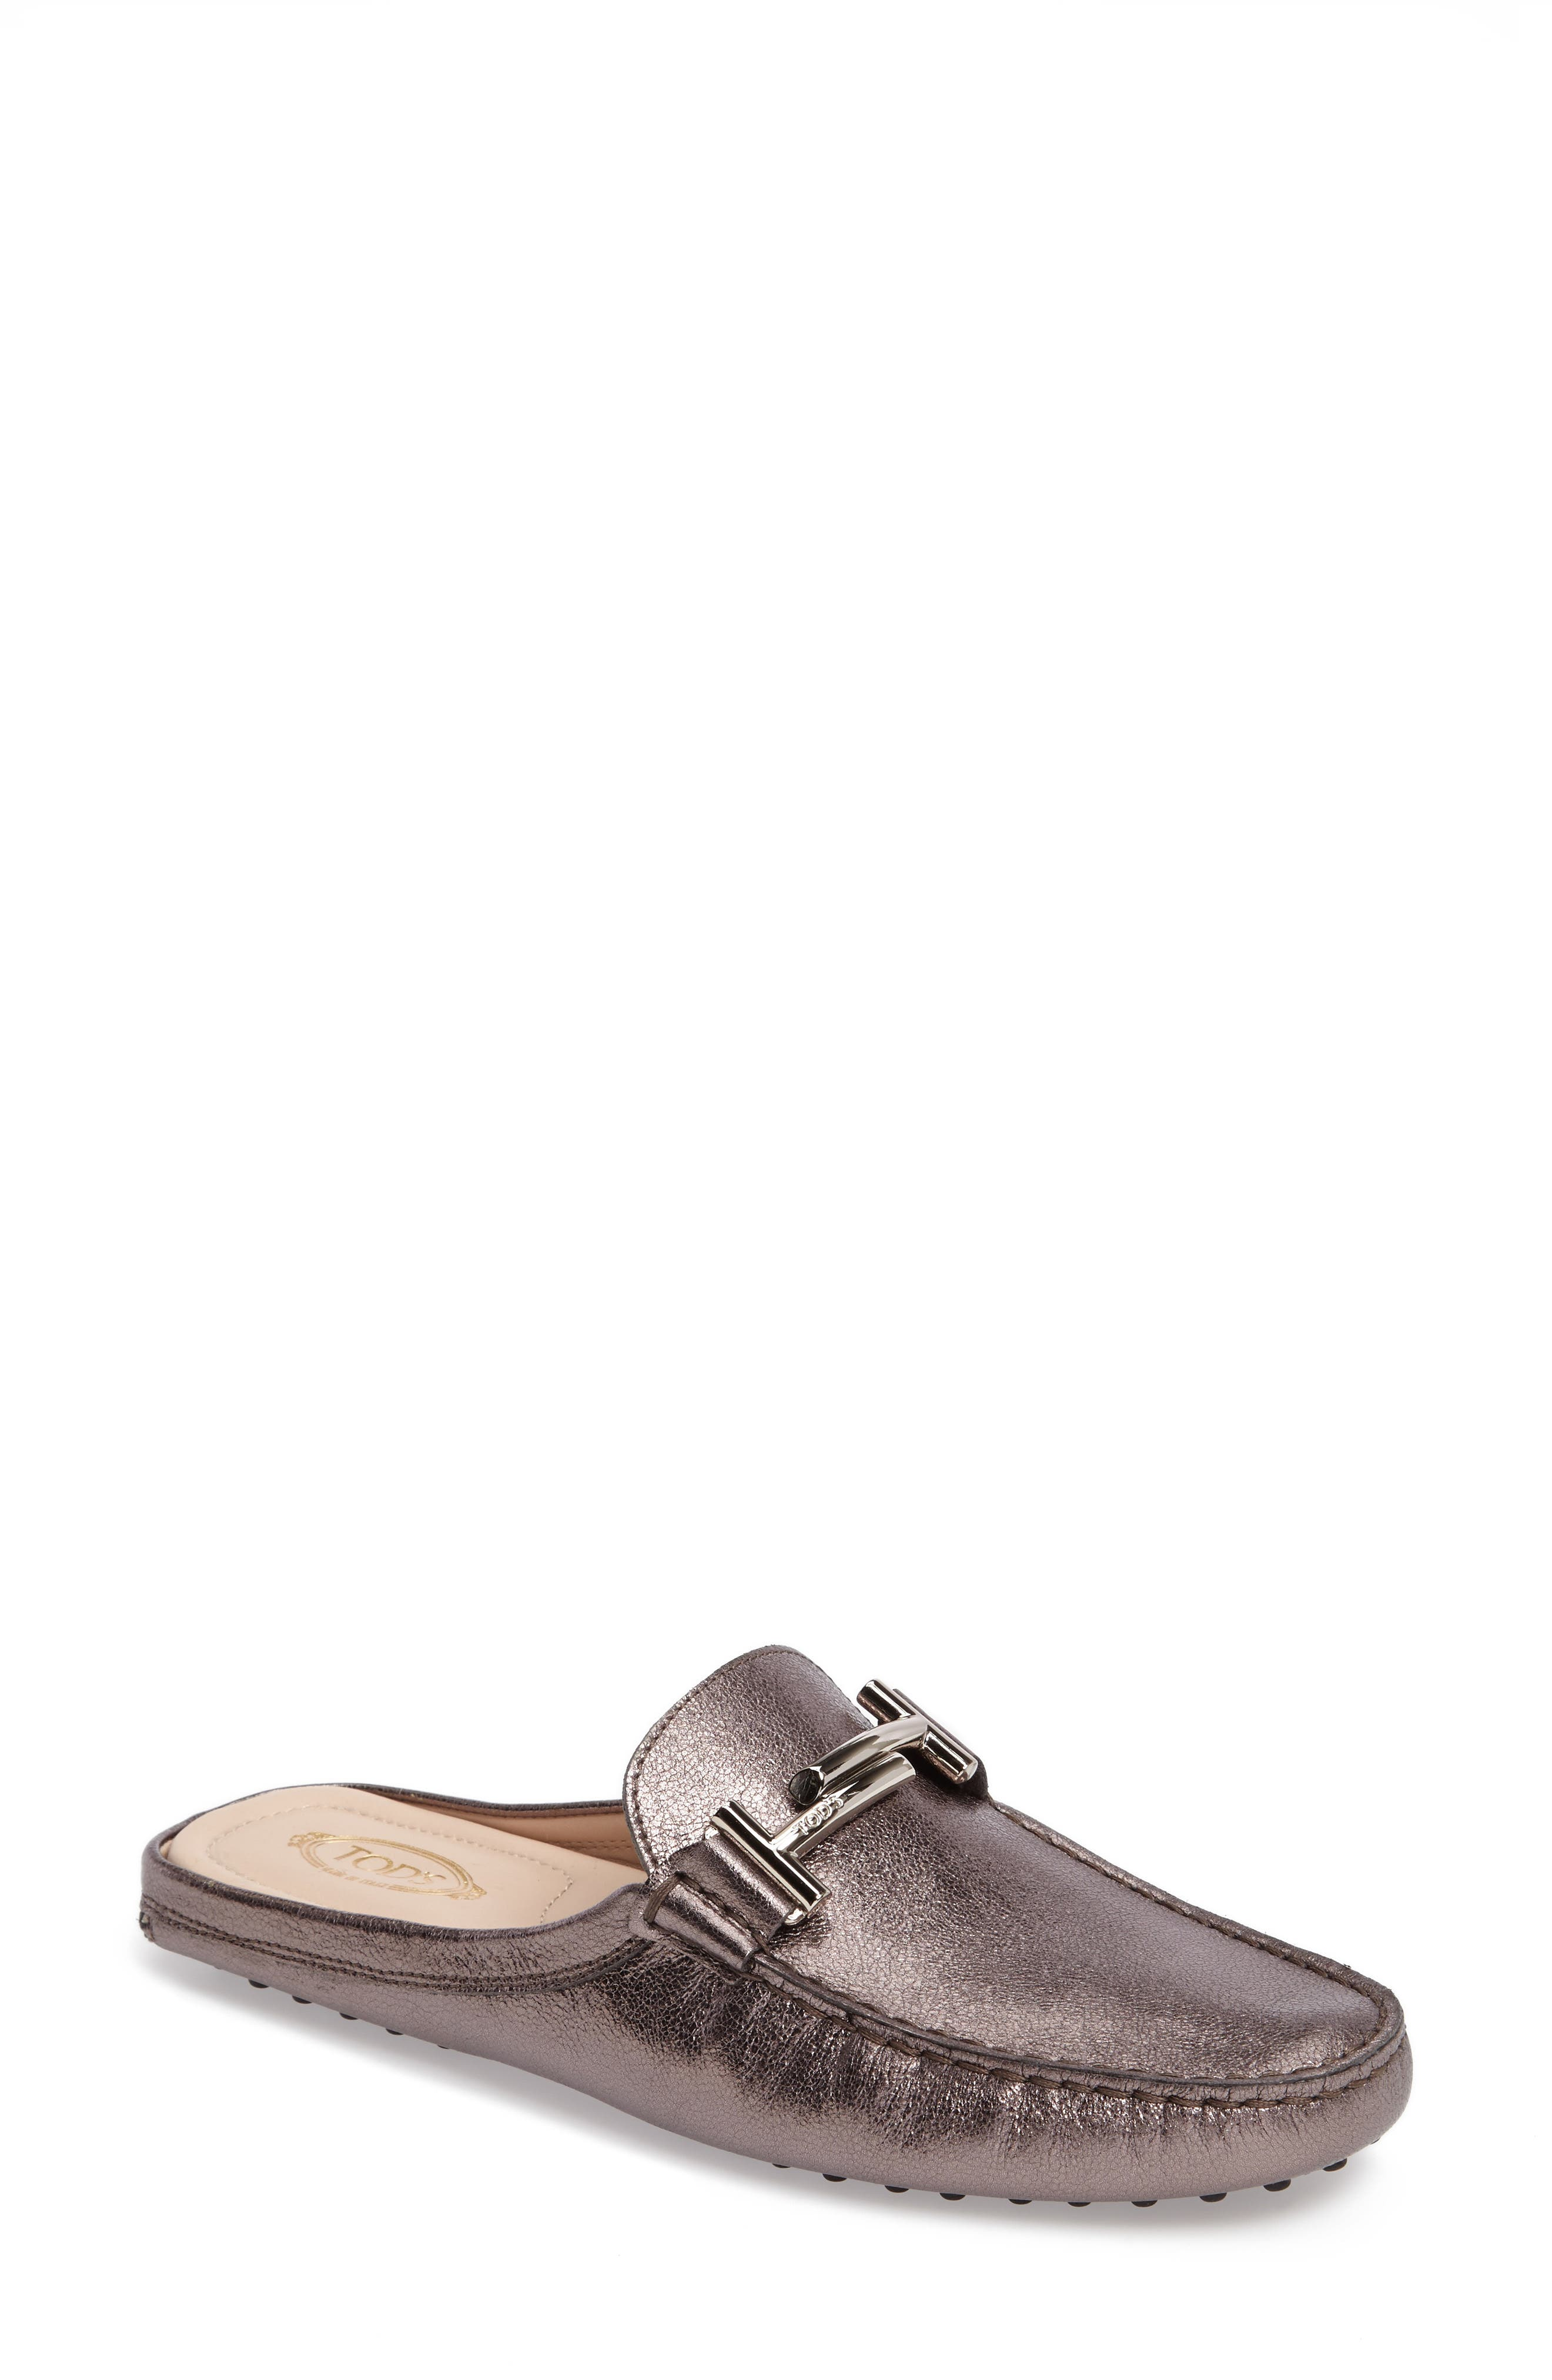 Alternate Image 1 Selected - Tod's Gommino Double-T Loafer Mule (Women)